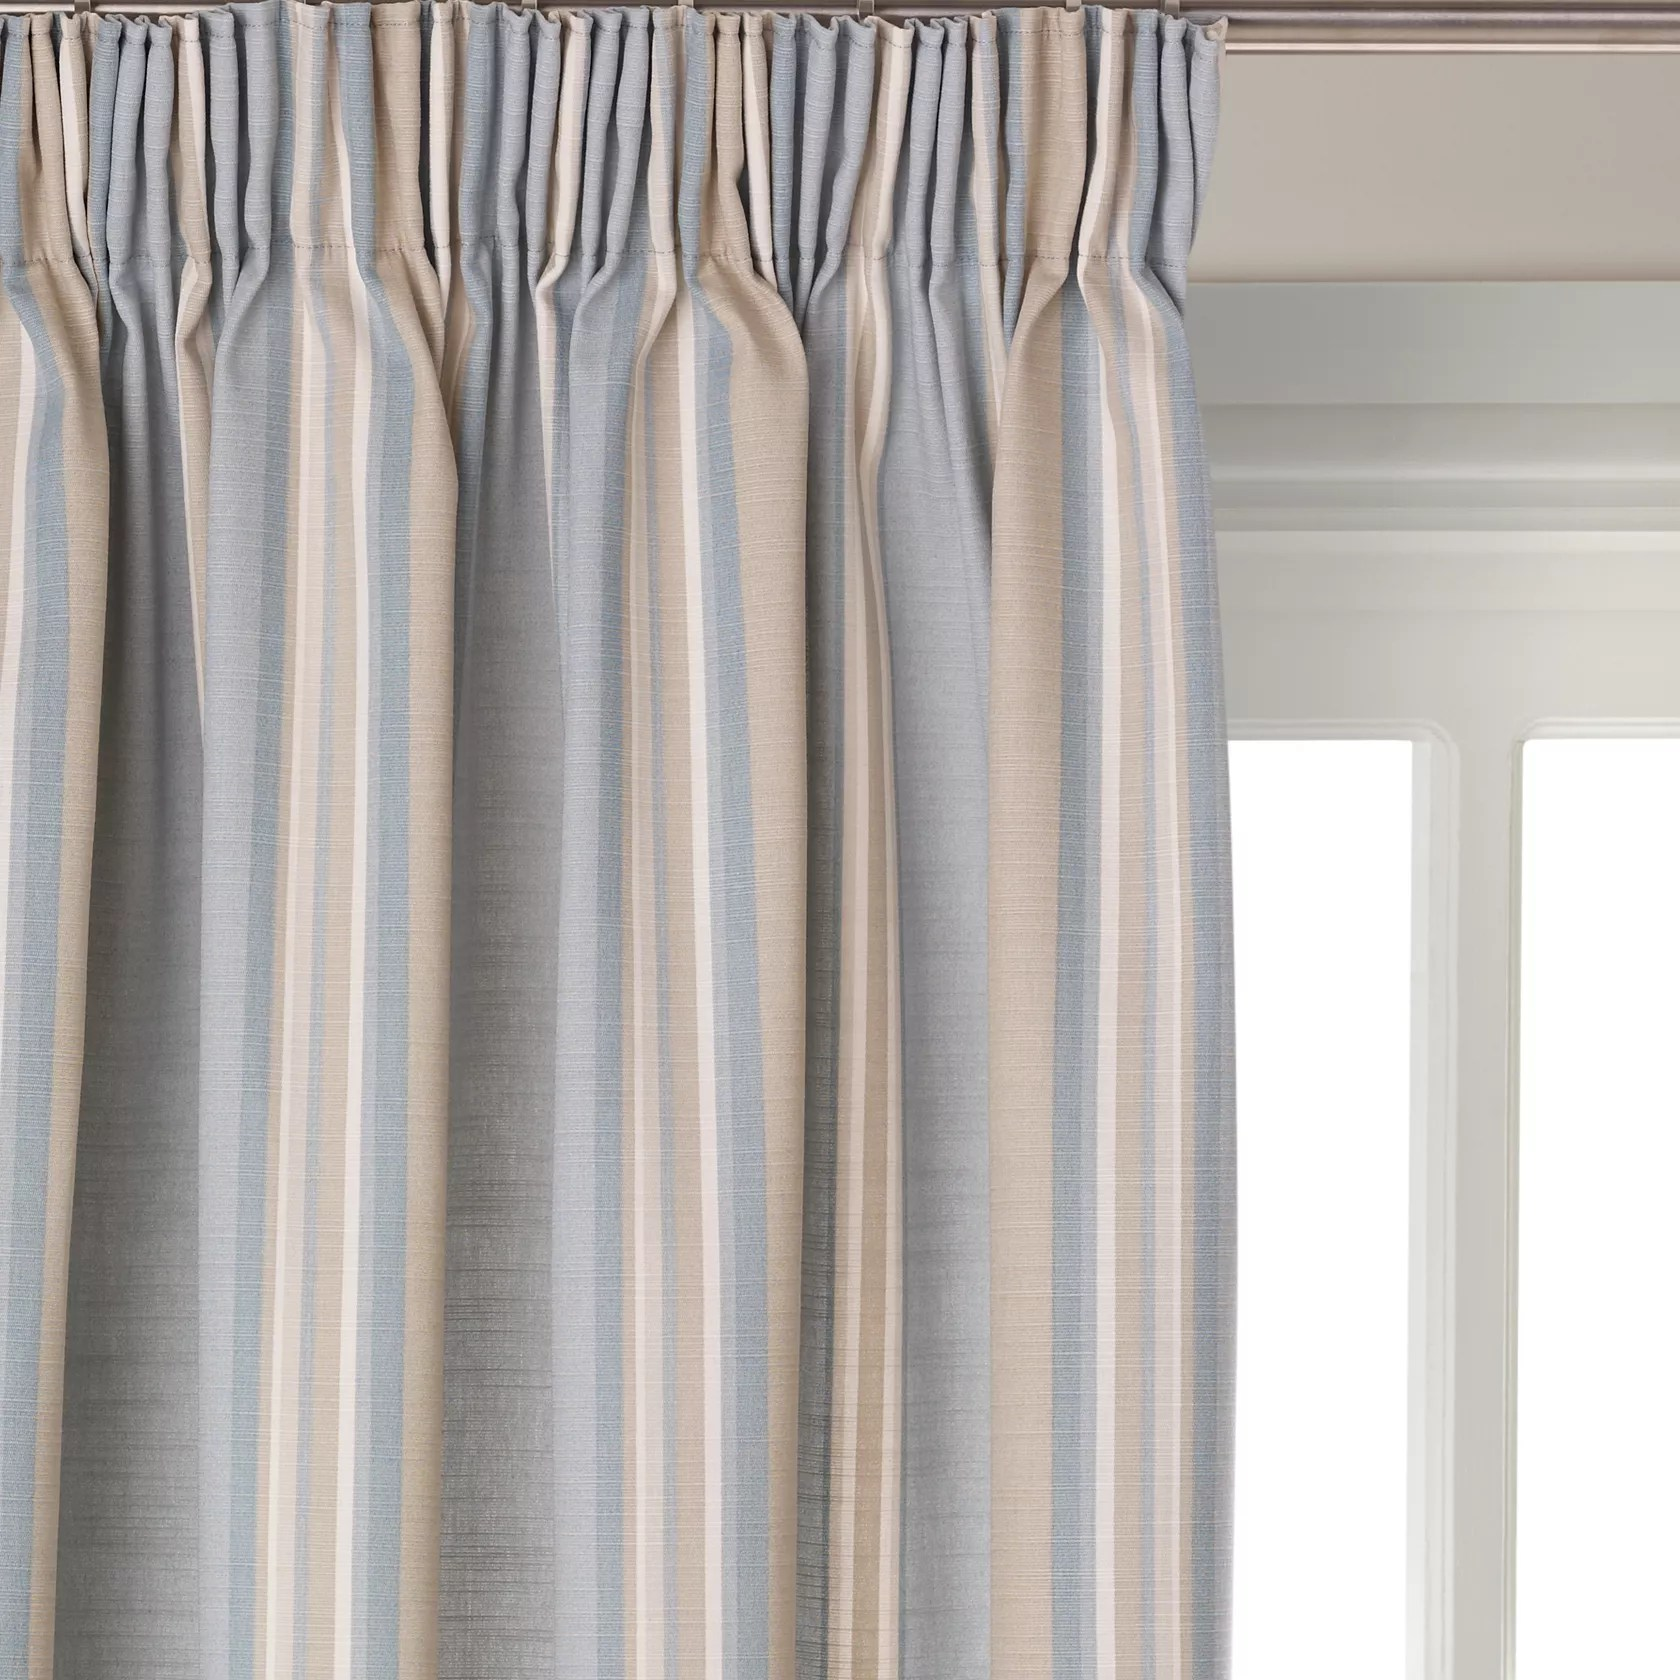 Light blue curtains - Pencil Pleat Ready Made Curtains Voiles John Lewis